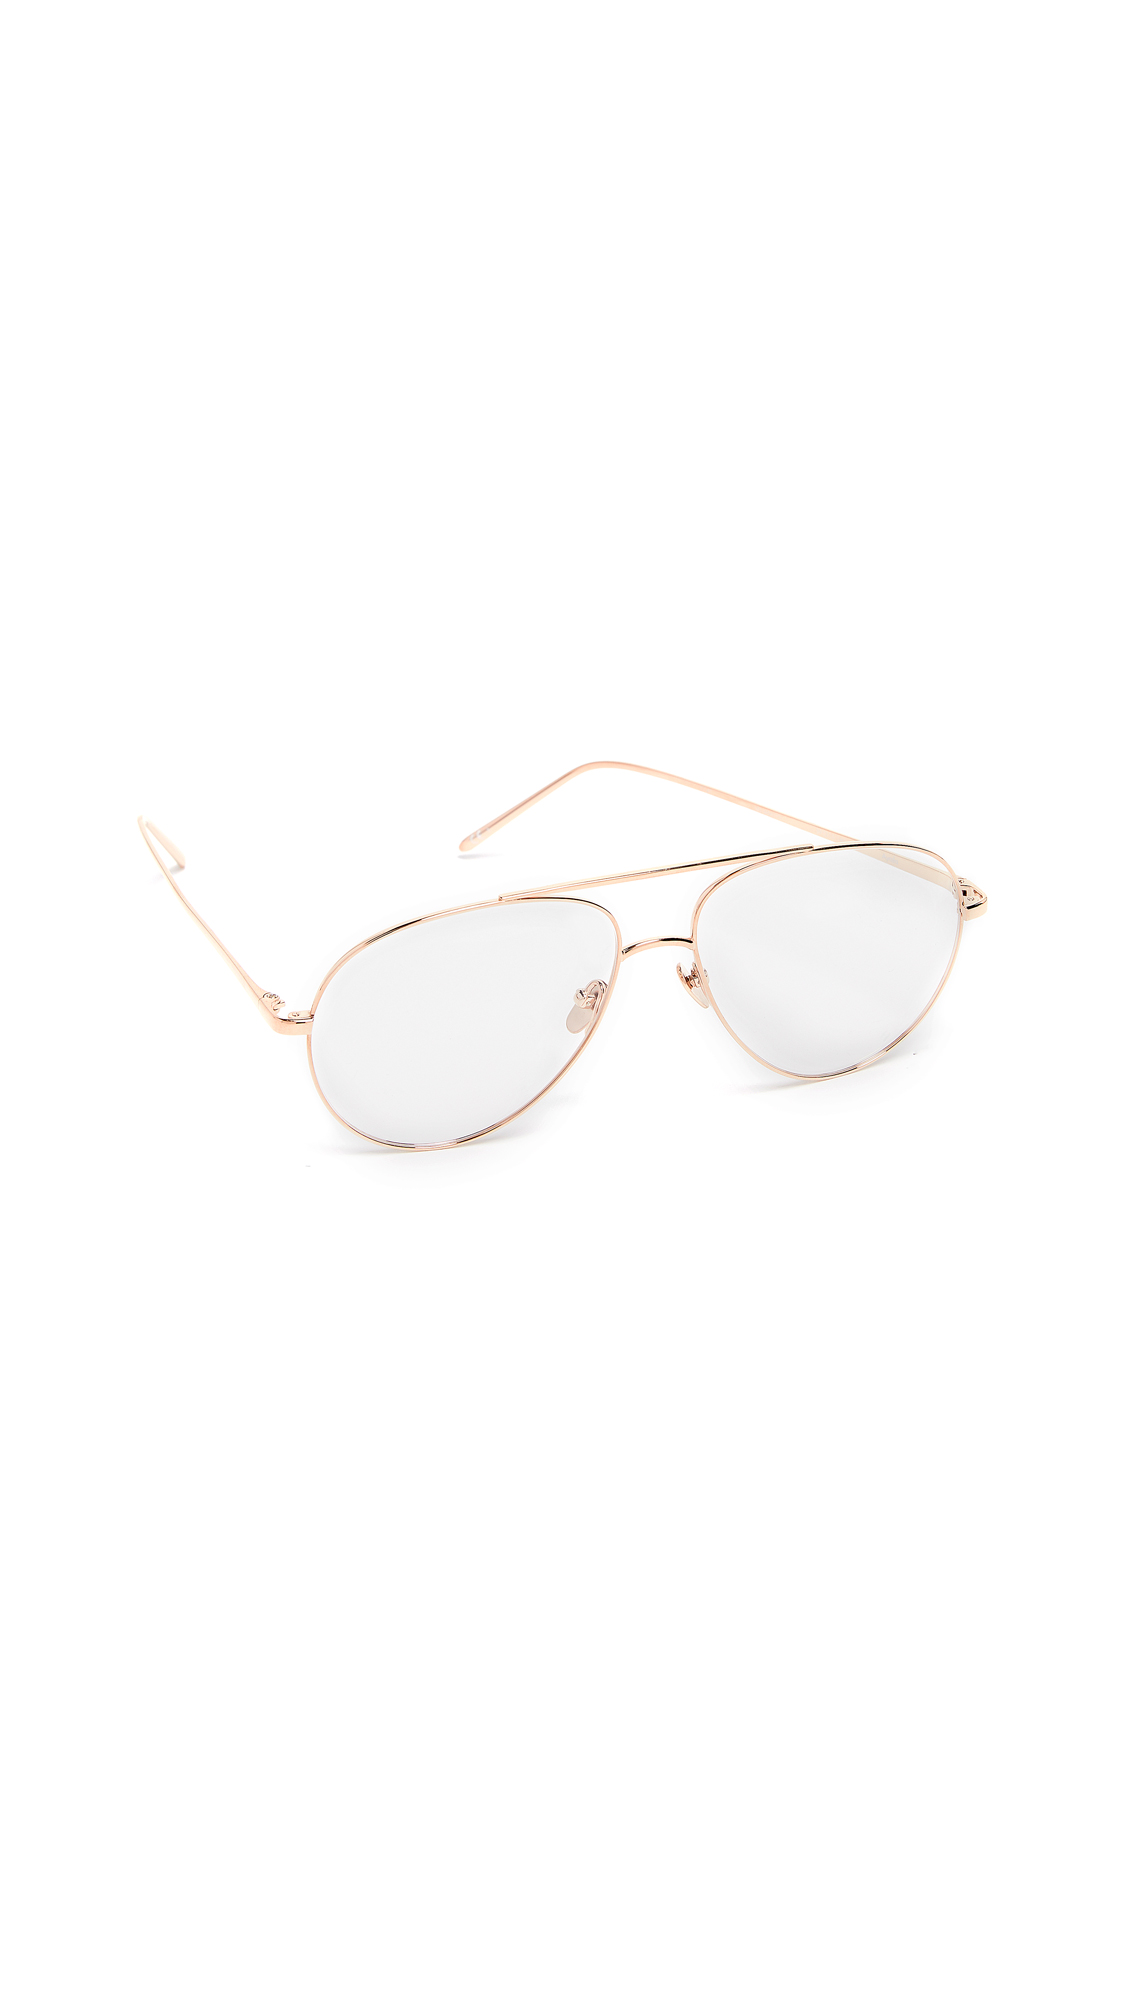 LINDA FARROW LUXE Aviator Glasses in Rose Gold/Clear